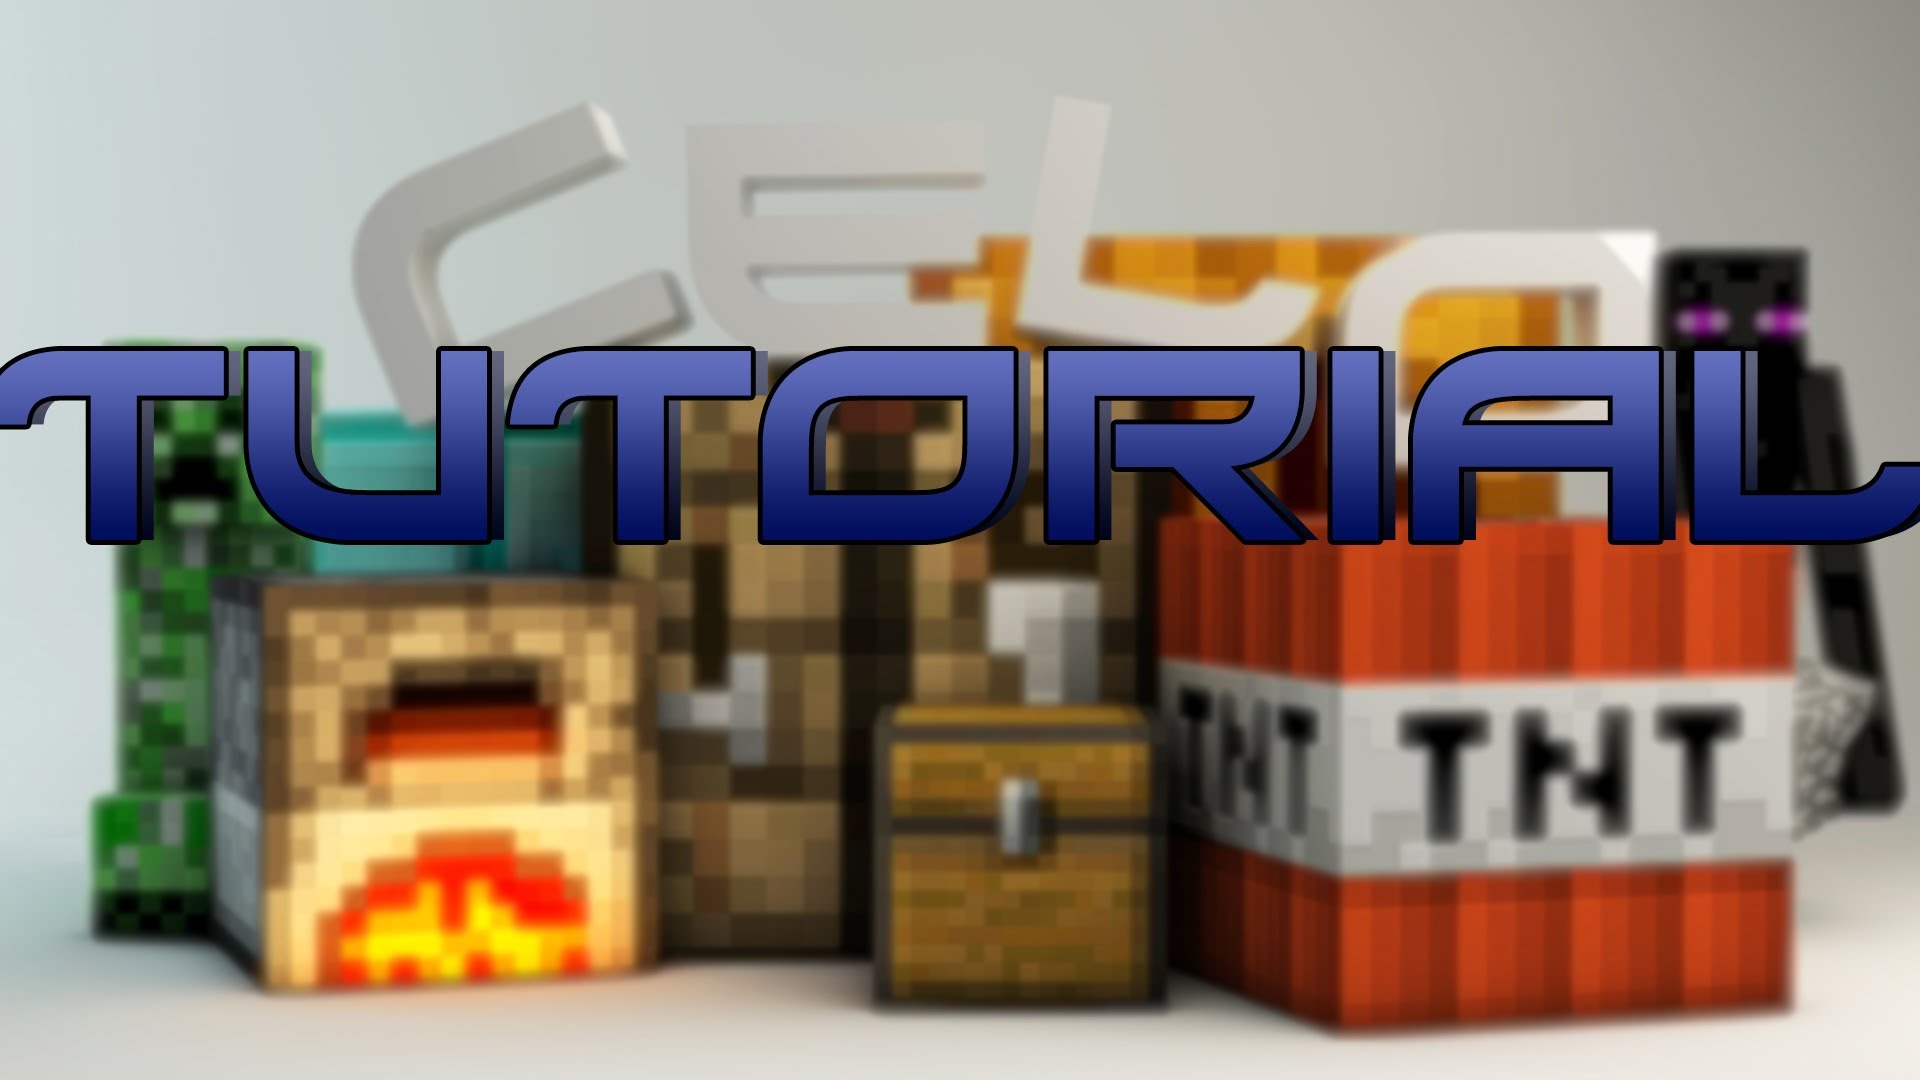 How to Create the Minecraft Wallpaper Part 1 1920x1080